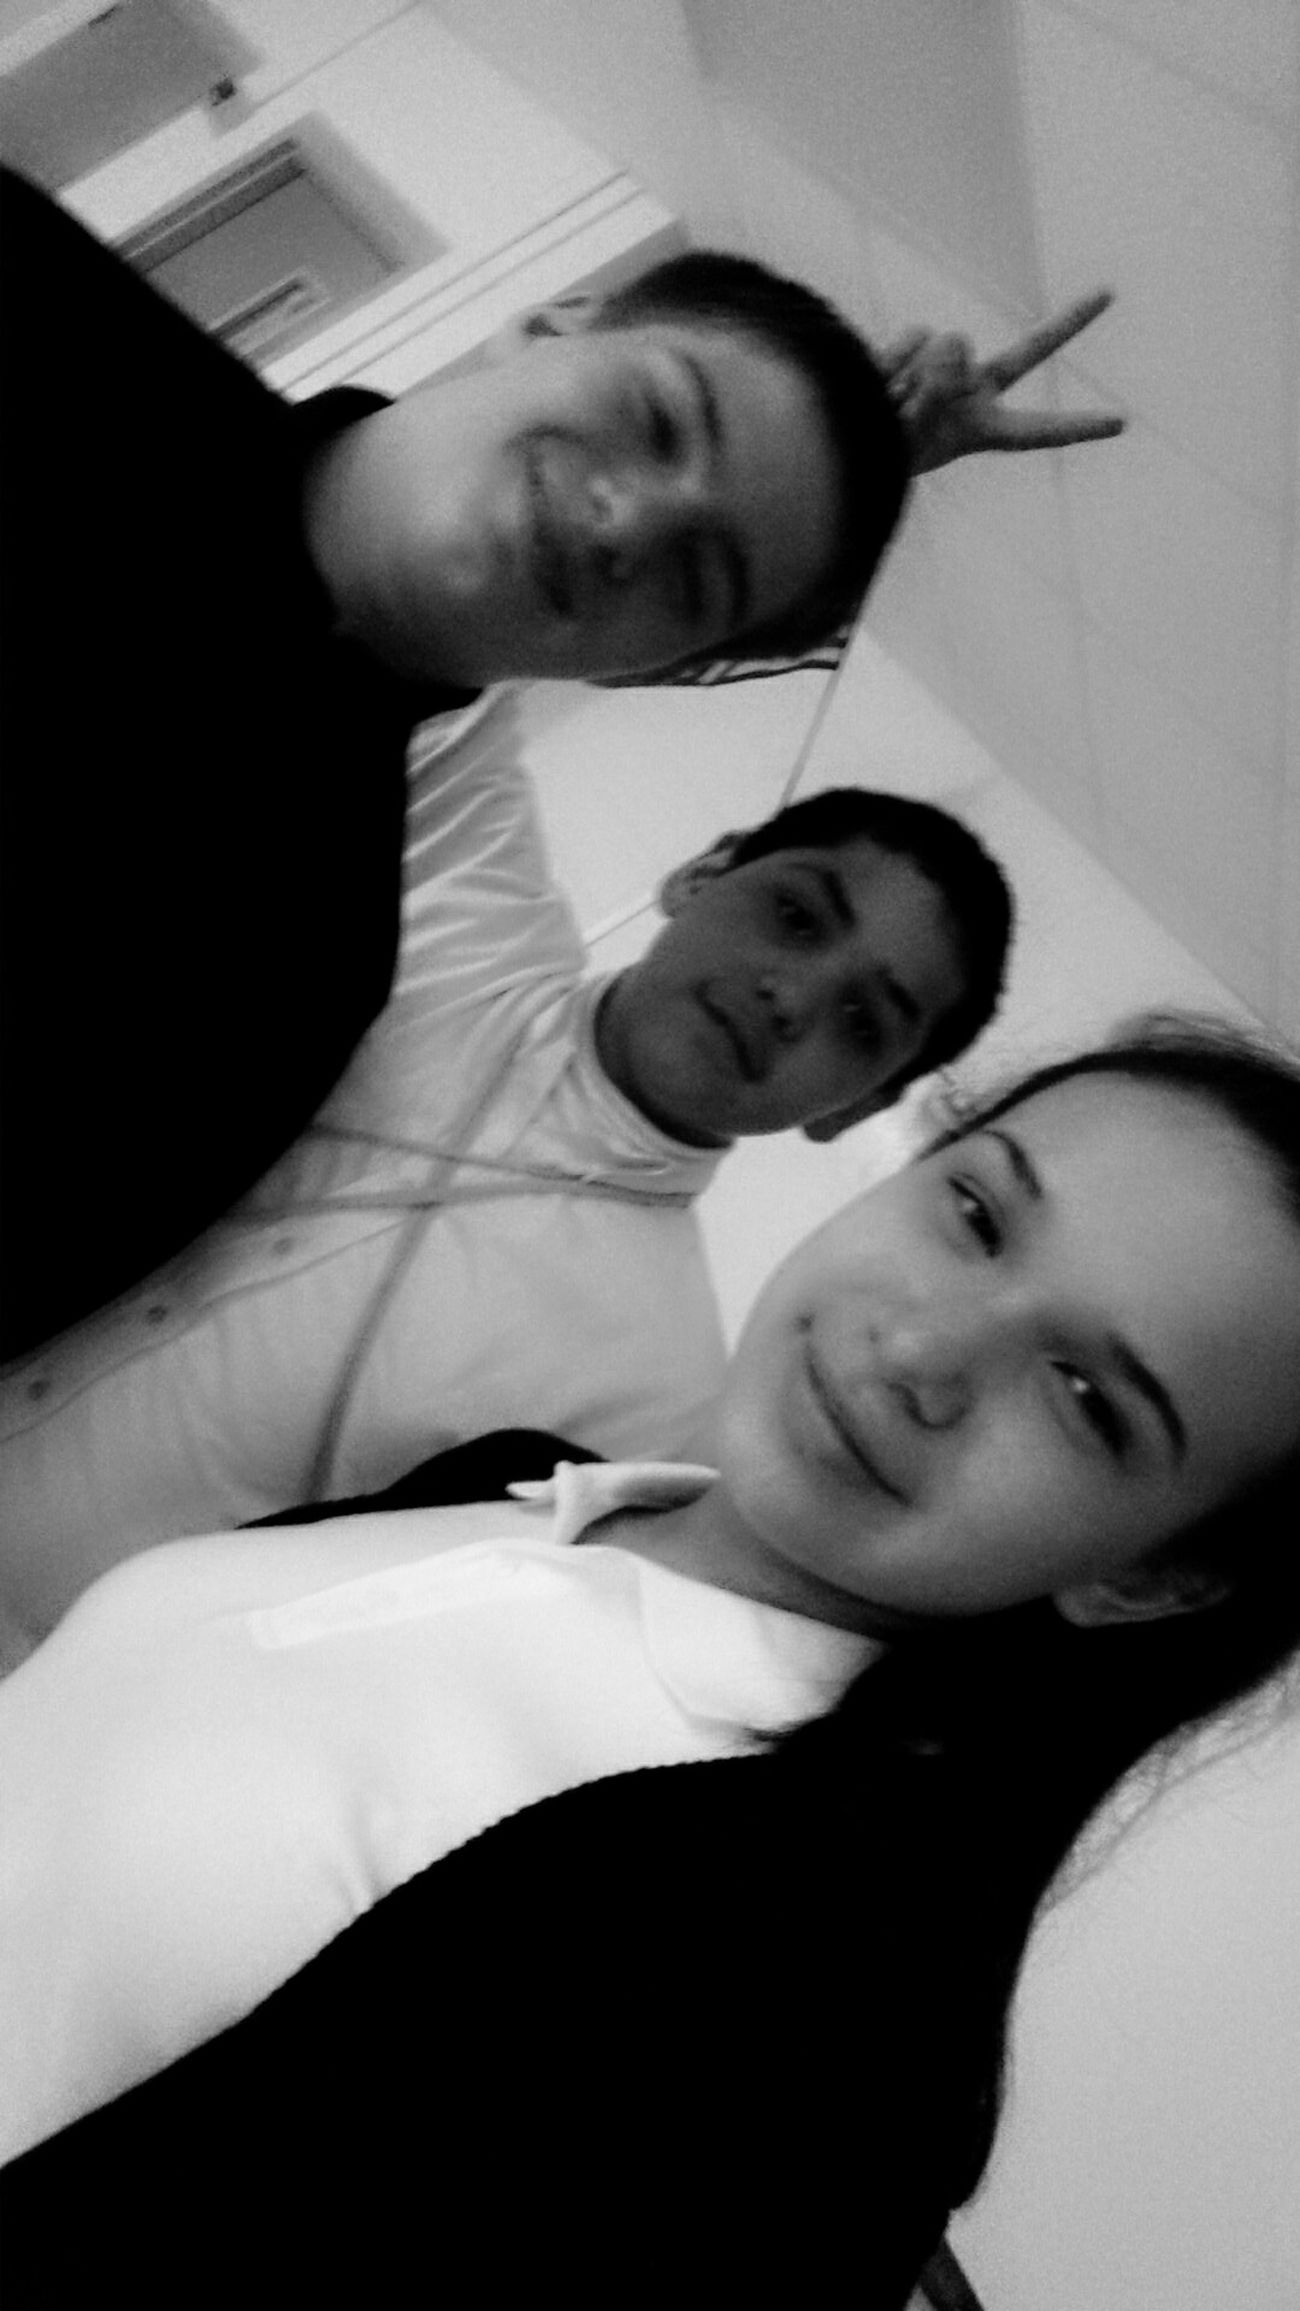 miss y'all Friend ✌ Friendship Friend!❤